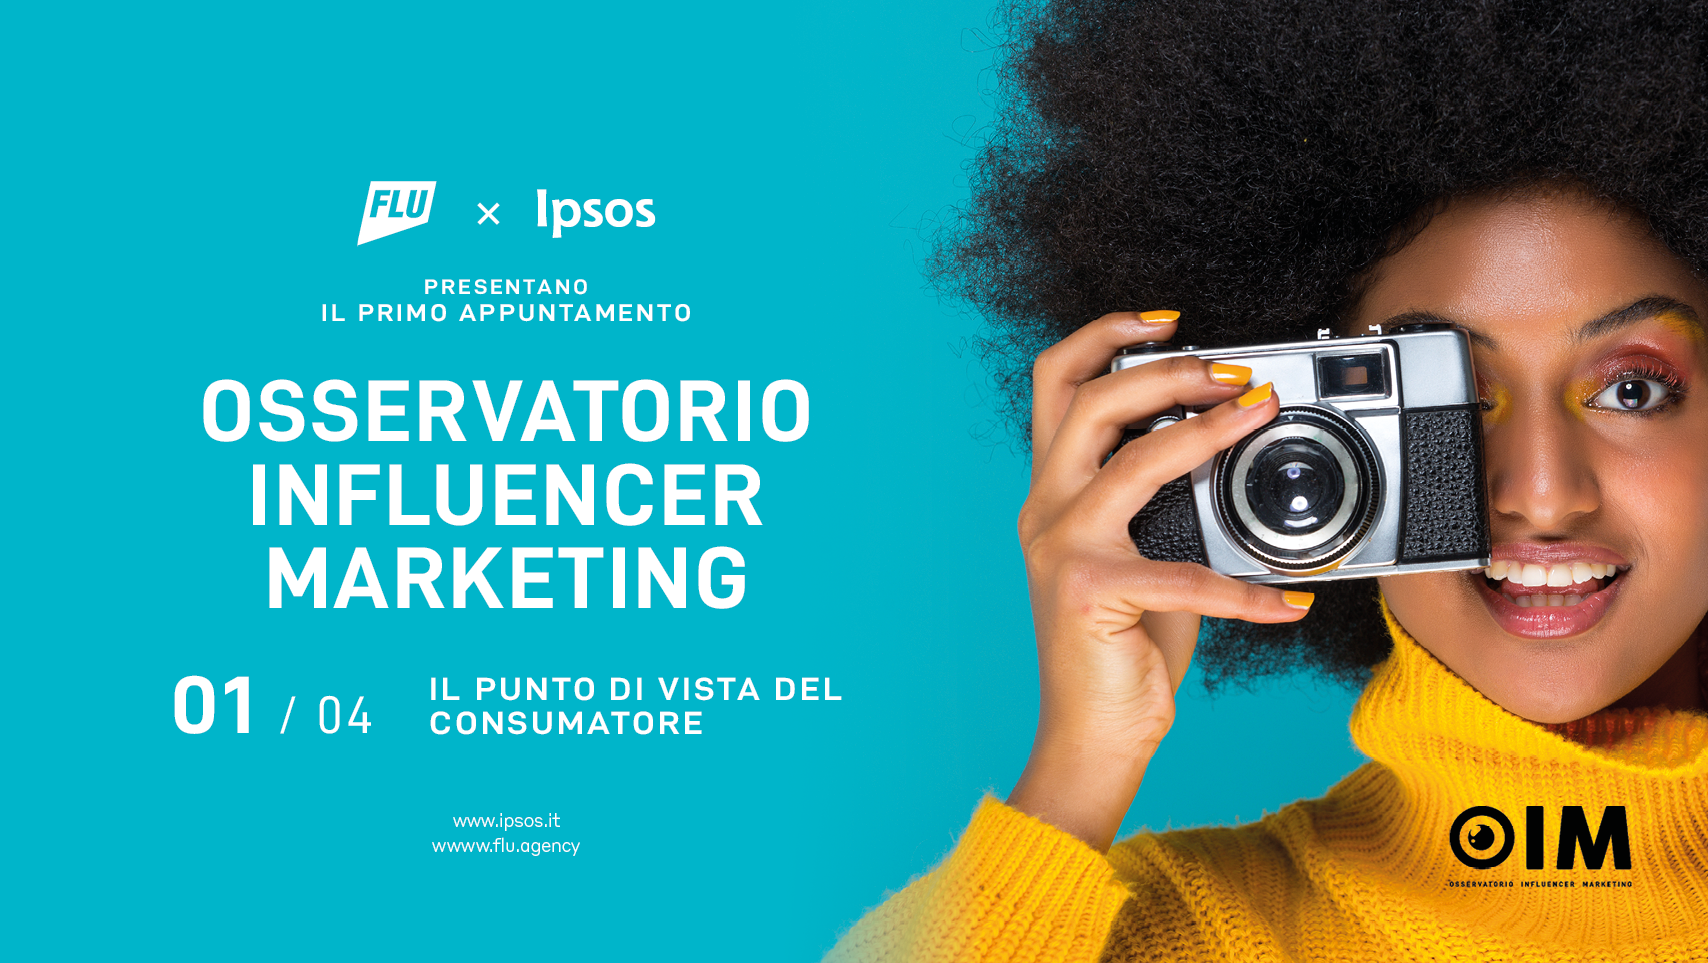 Il primo appuntamento: l'influencer marketing e consumatori